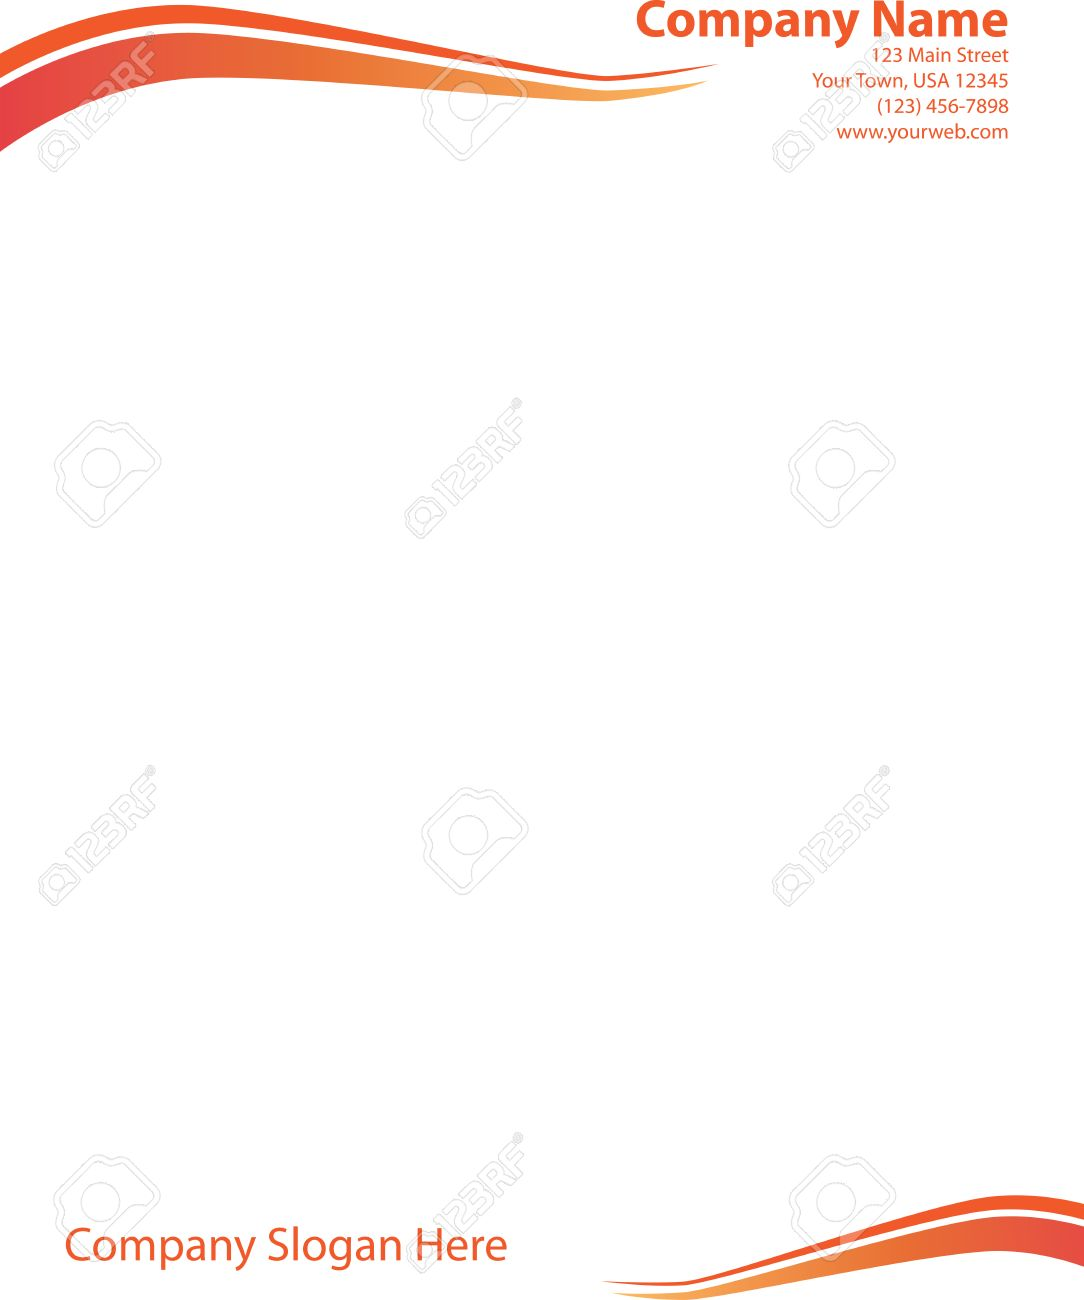 Wave letterhead template orange red royalty free cliparts vectors vector wave letterhead template orange red altavistaventures Gallery